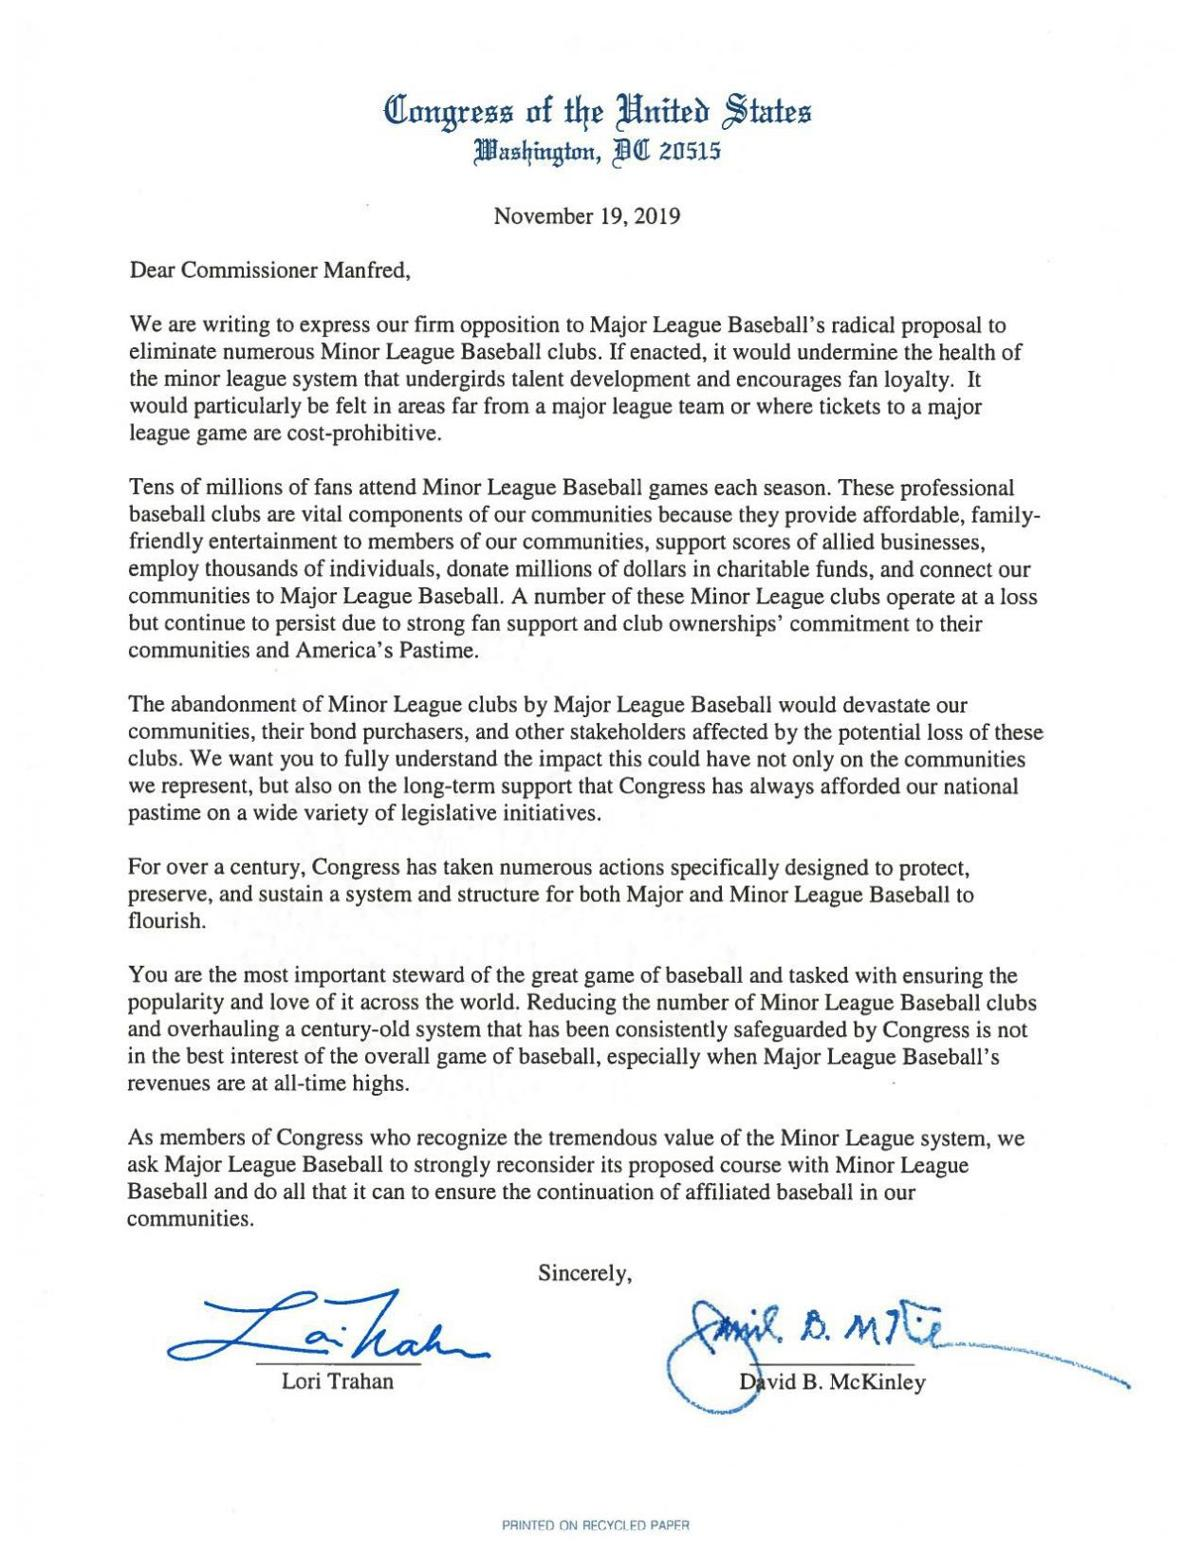 Letter to Commissioner Manfred